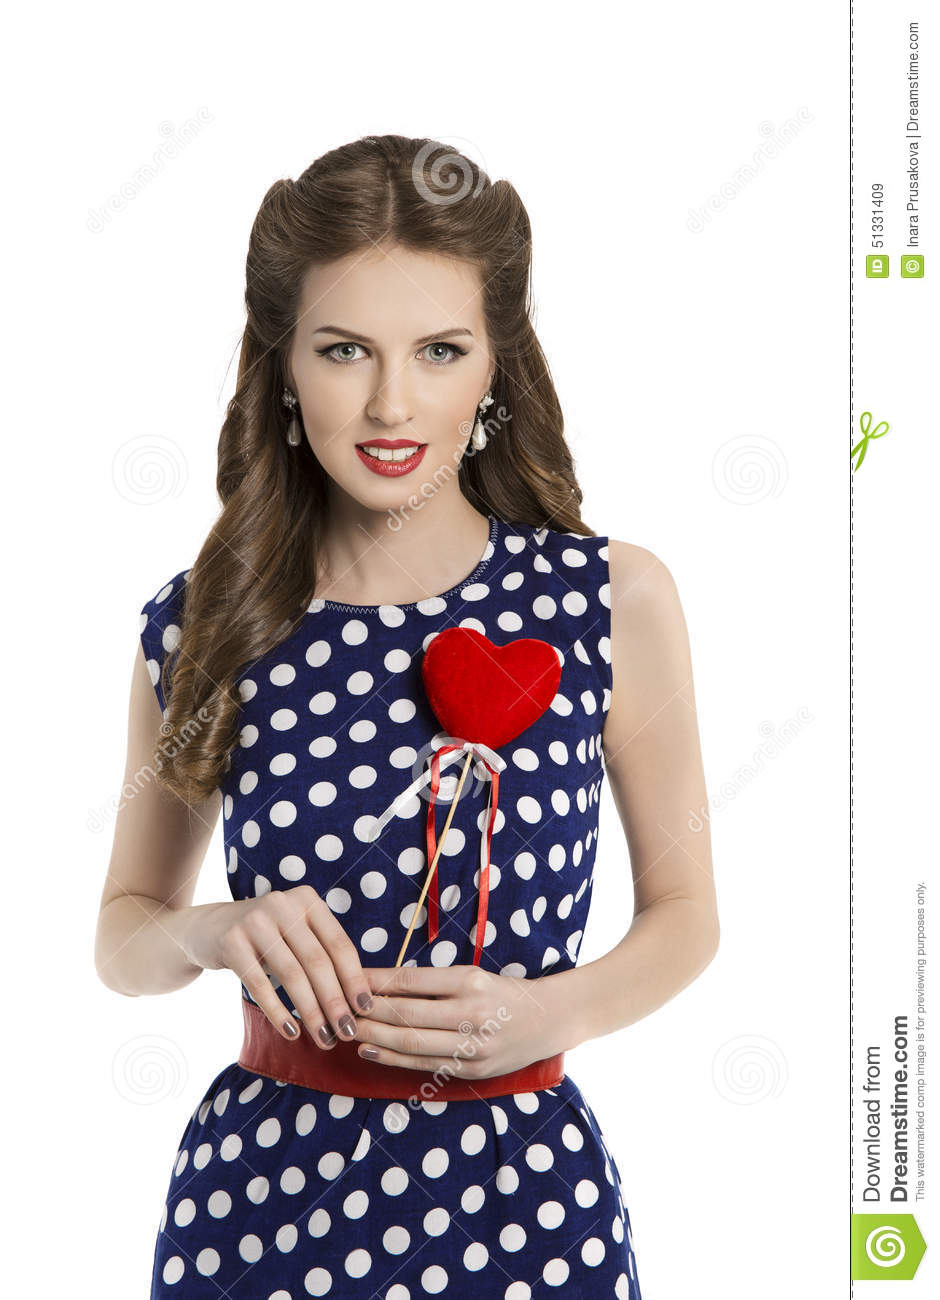 Woman In Polka Dot Dress With Heart Retro Girl Pin Up Hair Style